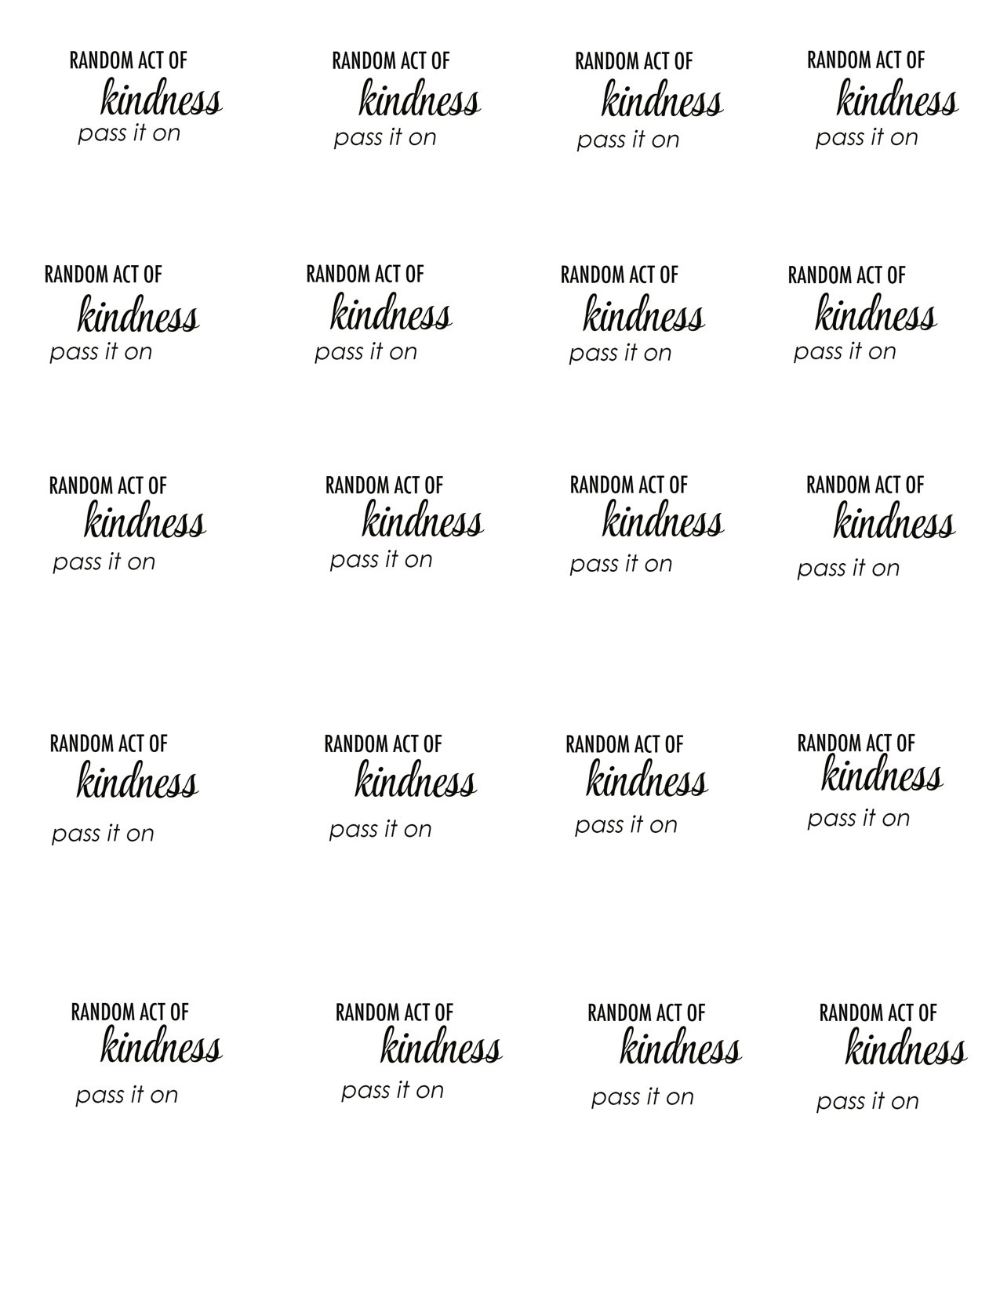 Images Of Acts Of Kindness Template Unemeuf Pertaining To Random Acts Of Kindness Cards Templates 10 Pro Random Acts Of Kindness Card Template The Chic Site